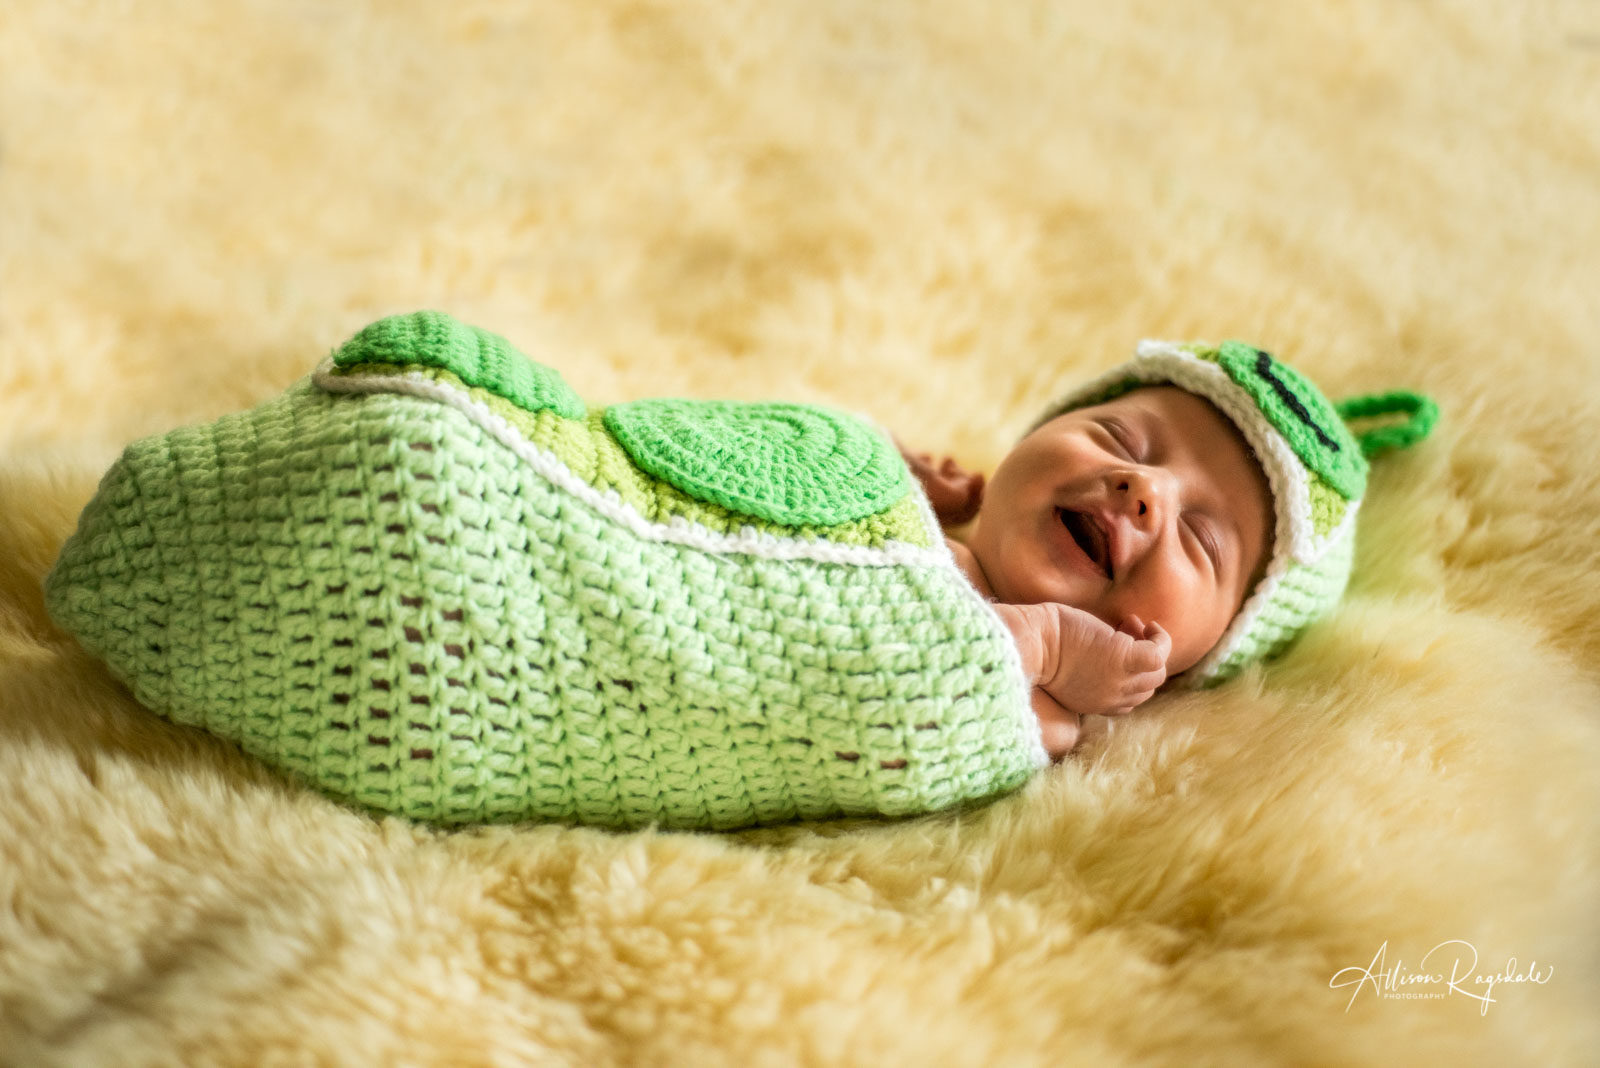 Baby Hocker Newborn Portraits